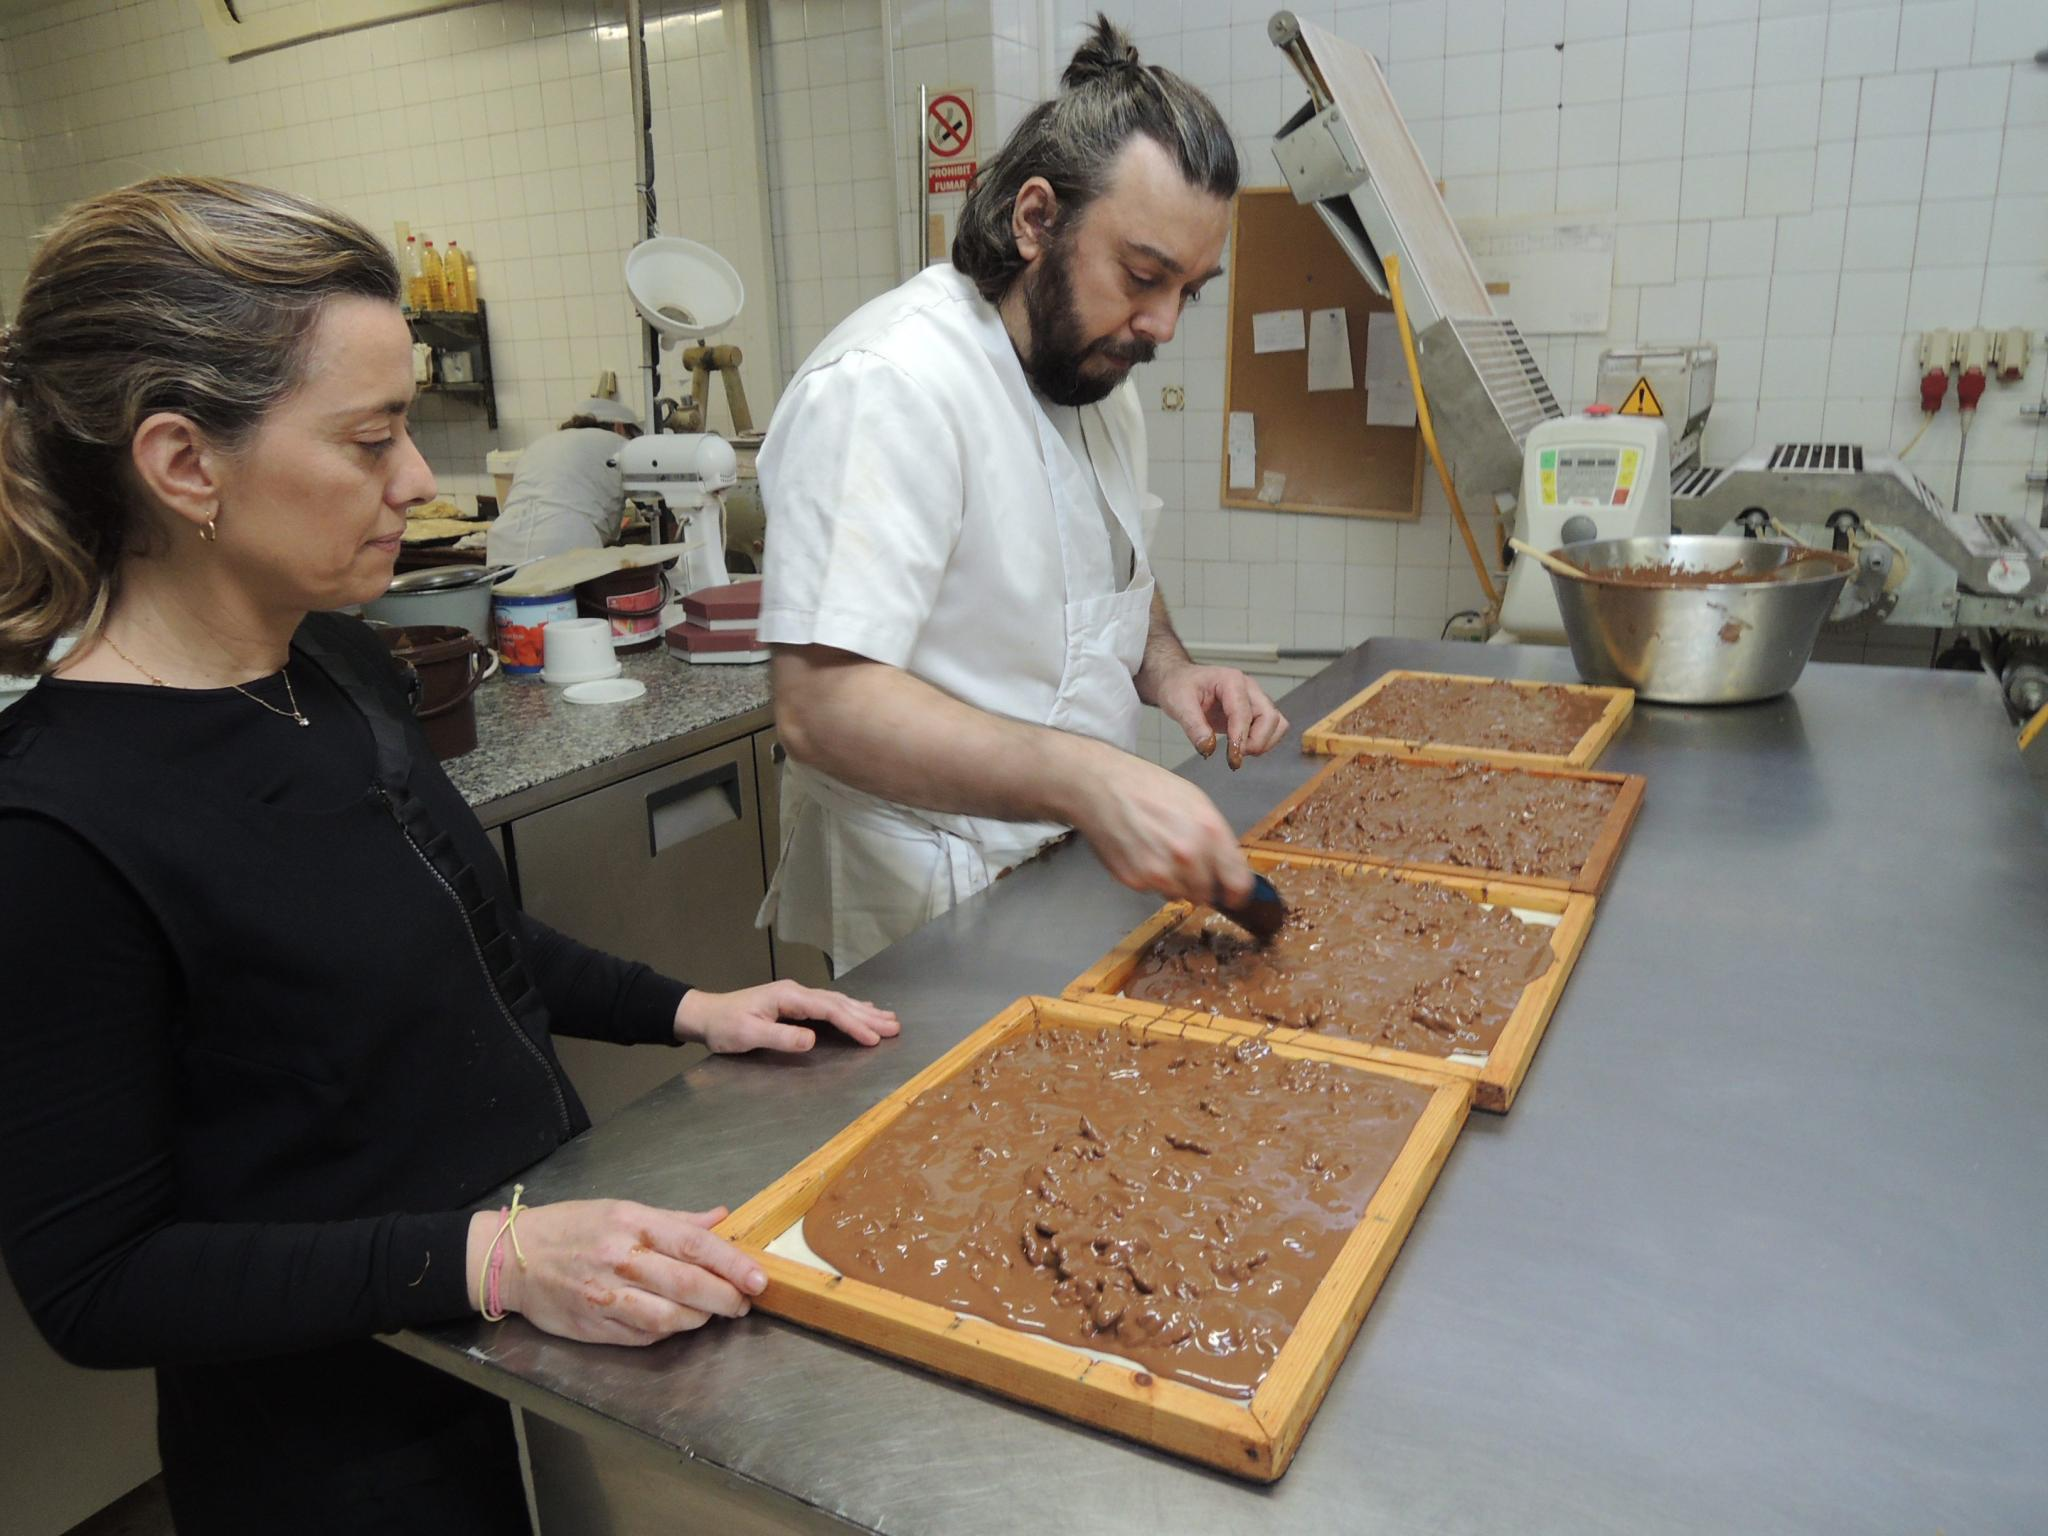 Young professional pastry chefs from Majorca are currently working hard on the production of new nougats with a classic cut